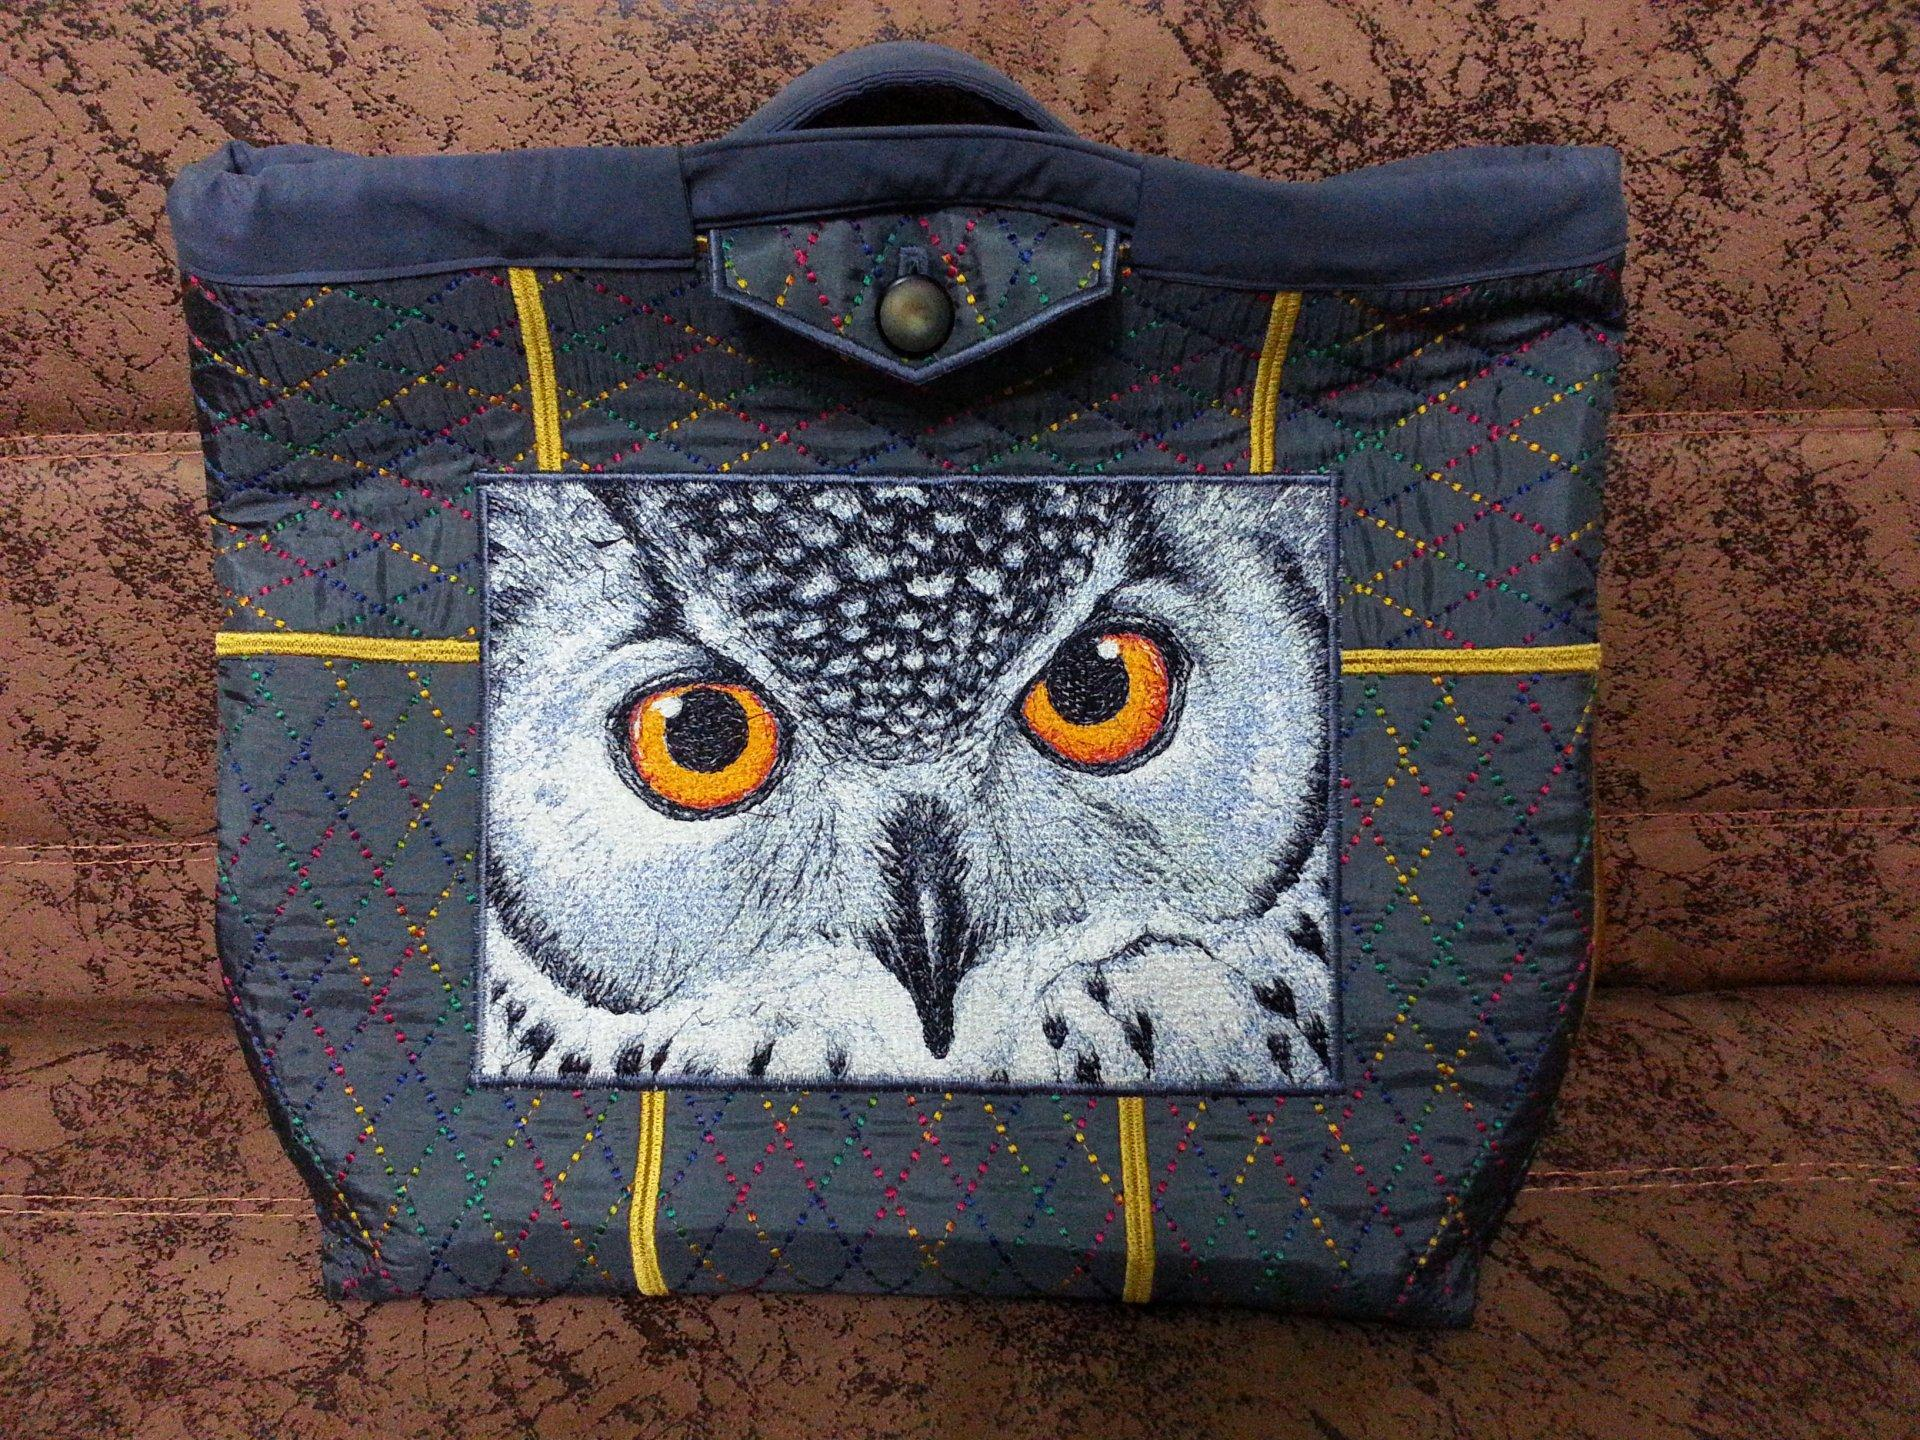 Embroidered bag with eyes of owl free design